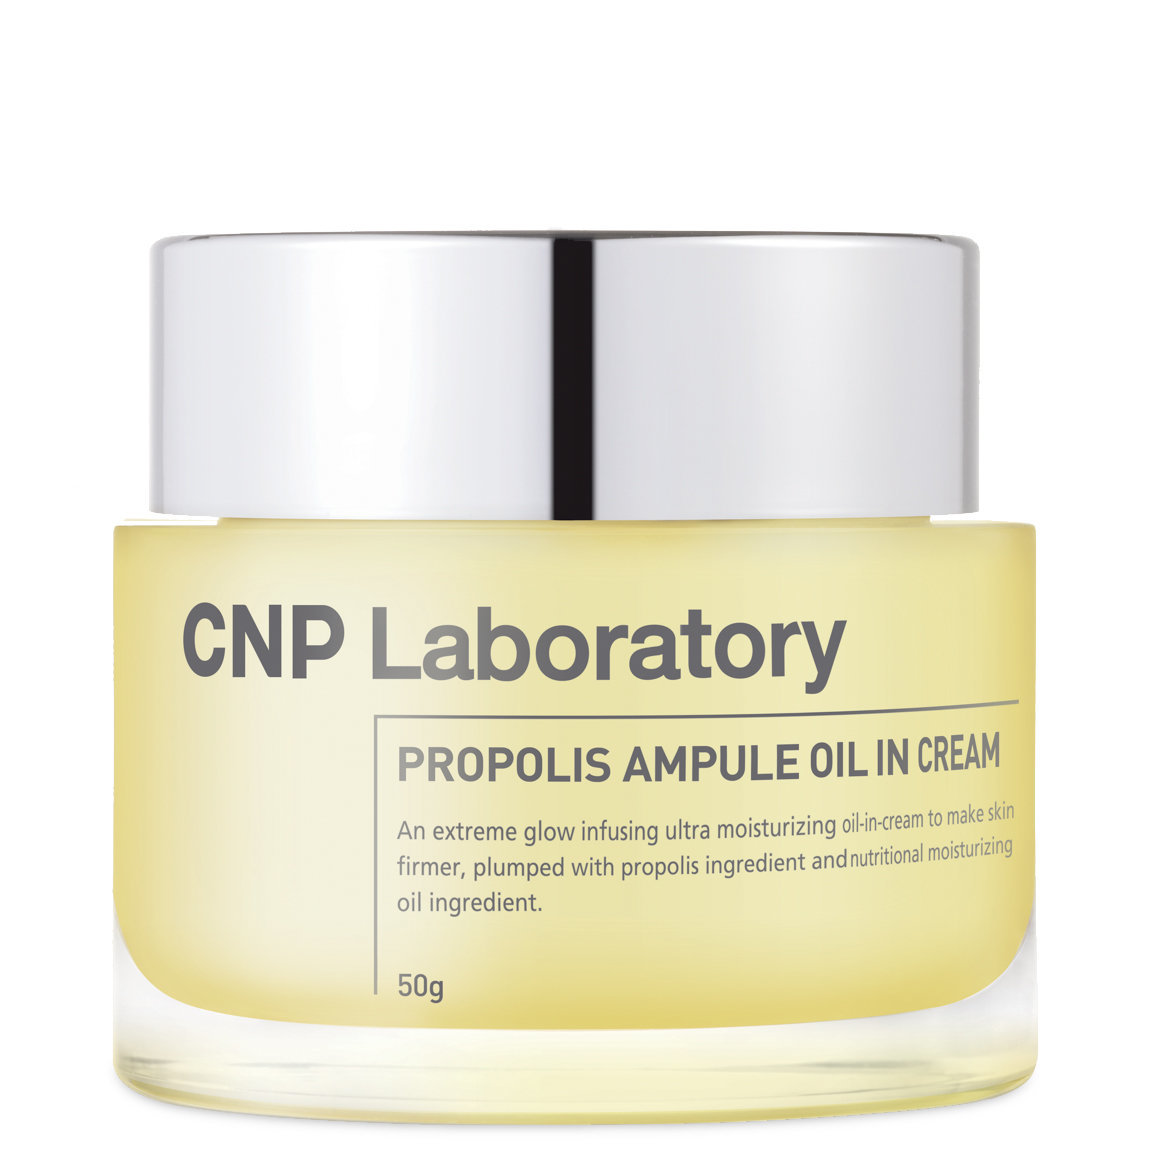 CNP Laboratory Propolis Ampule Oil In Cream alternative view 1 - product swatch.